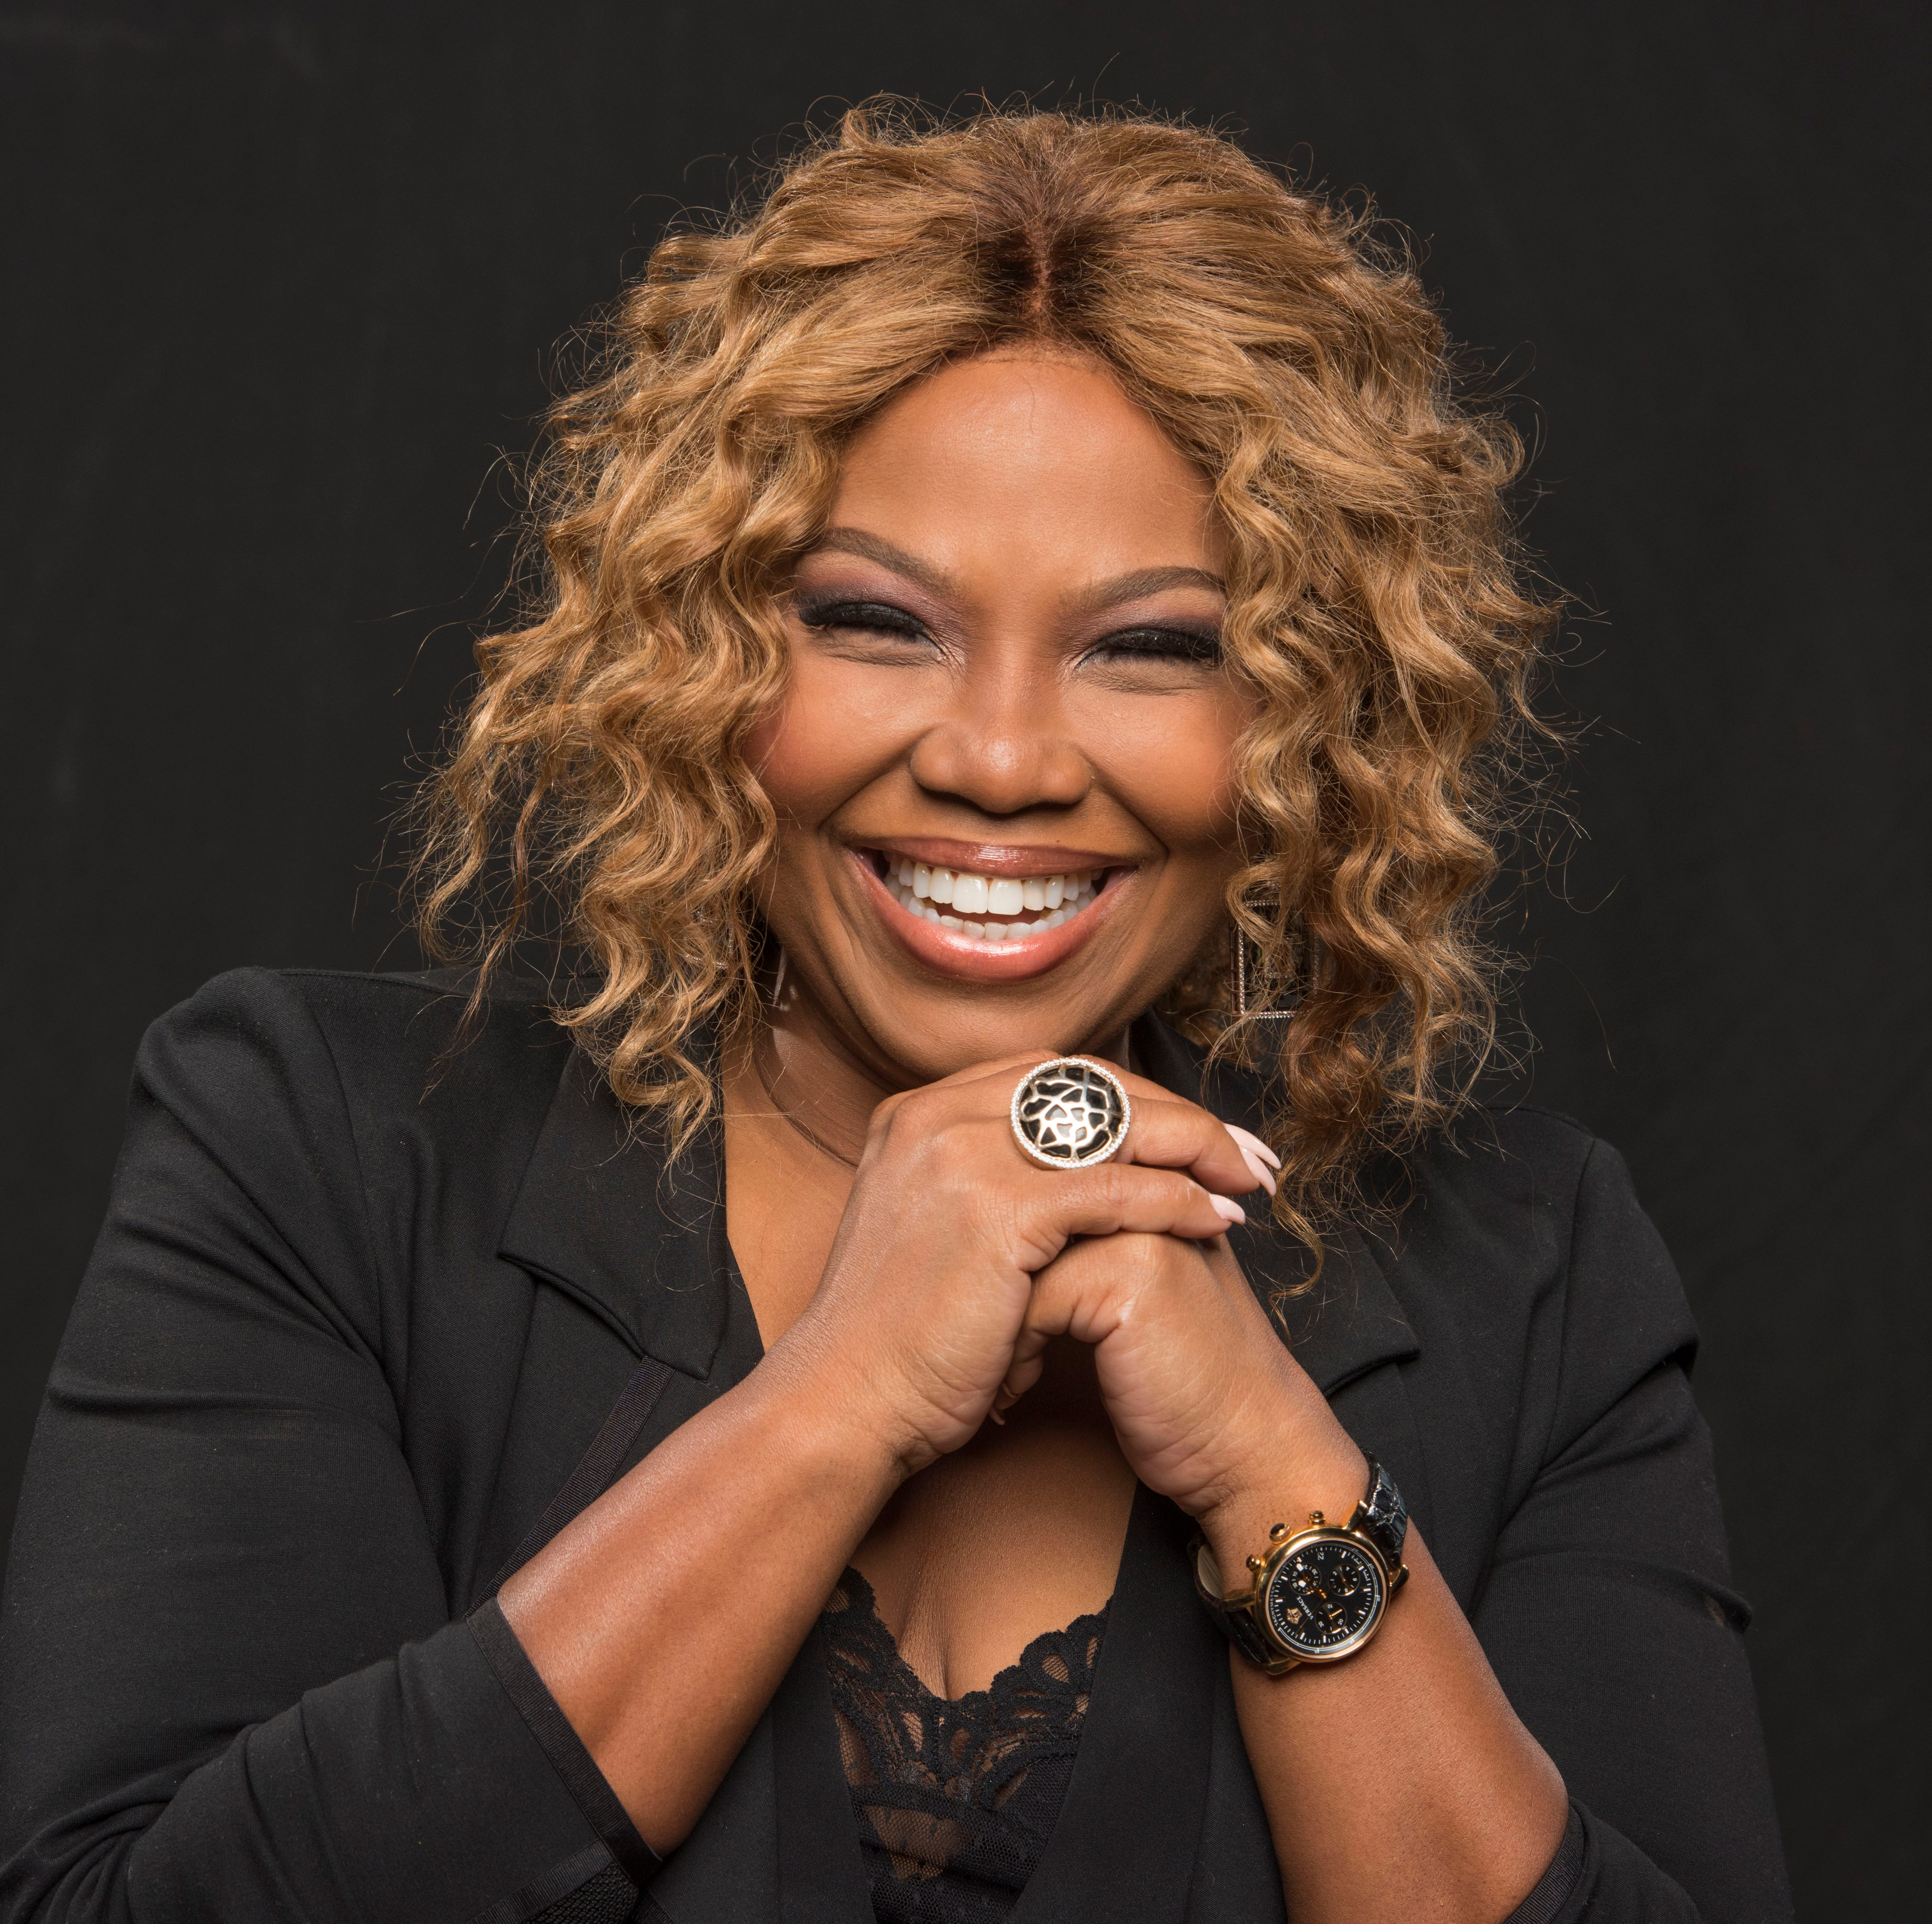 """Mona Scott-Young, 51, is an American media mogul, television producer, executive producer and entrepreneur. She is the CEO of the multi-media entertainment company Monami Entertainment, best known for producing the VH1 reality television franchise """"Love & Hip Hop."""""""